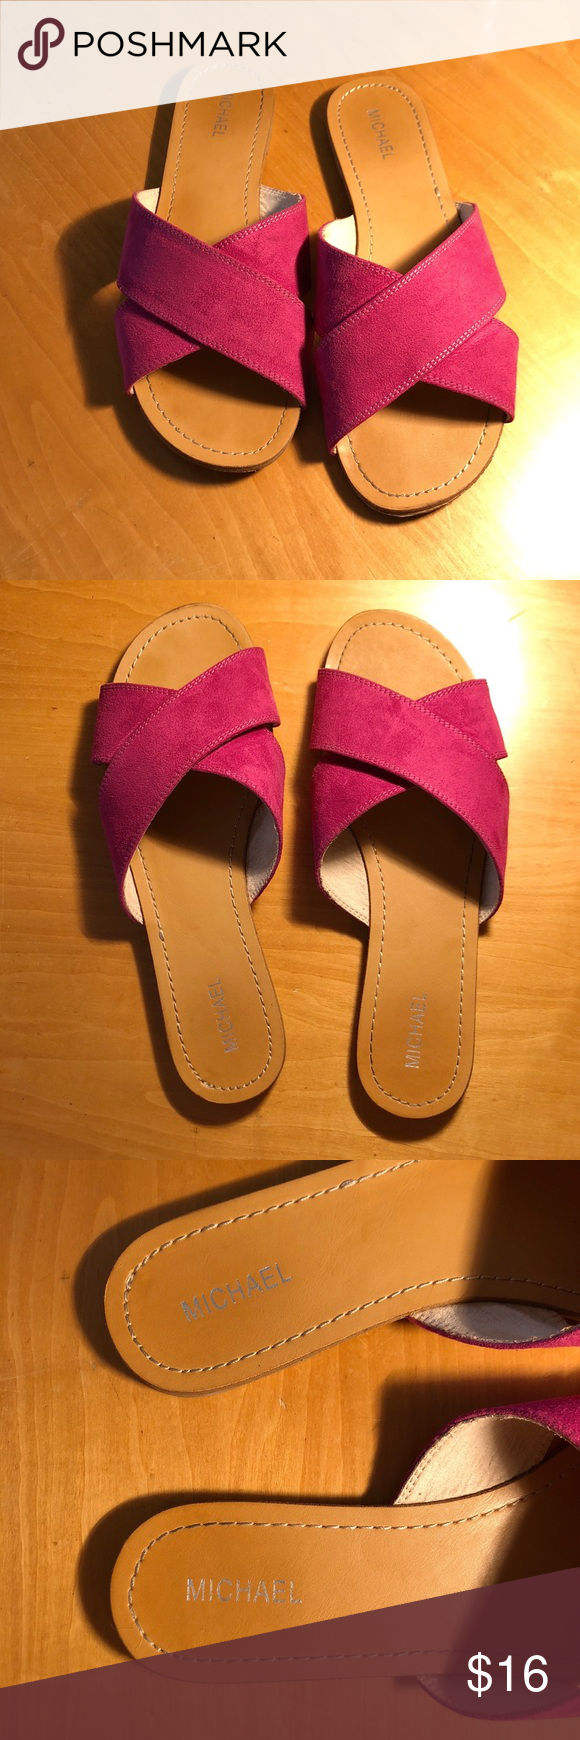 9f9a482166c8fc MICHAEL patsy sandals Good used condition. Size 9. A gorgeous sandal!  Lovely fuchsia